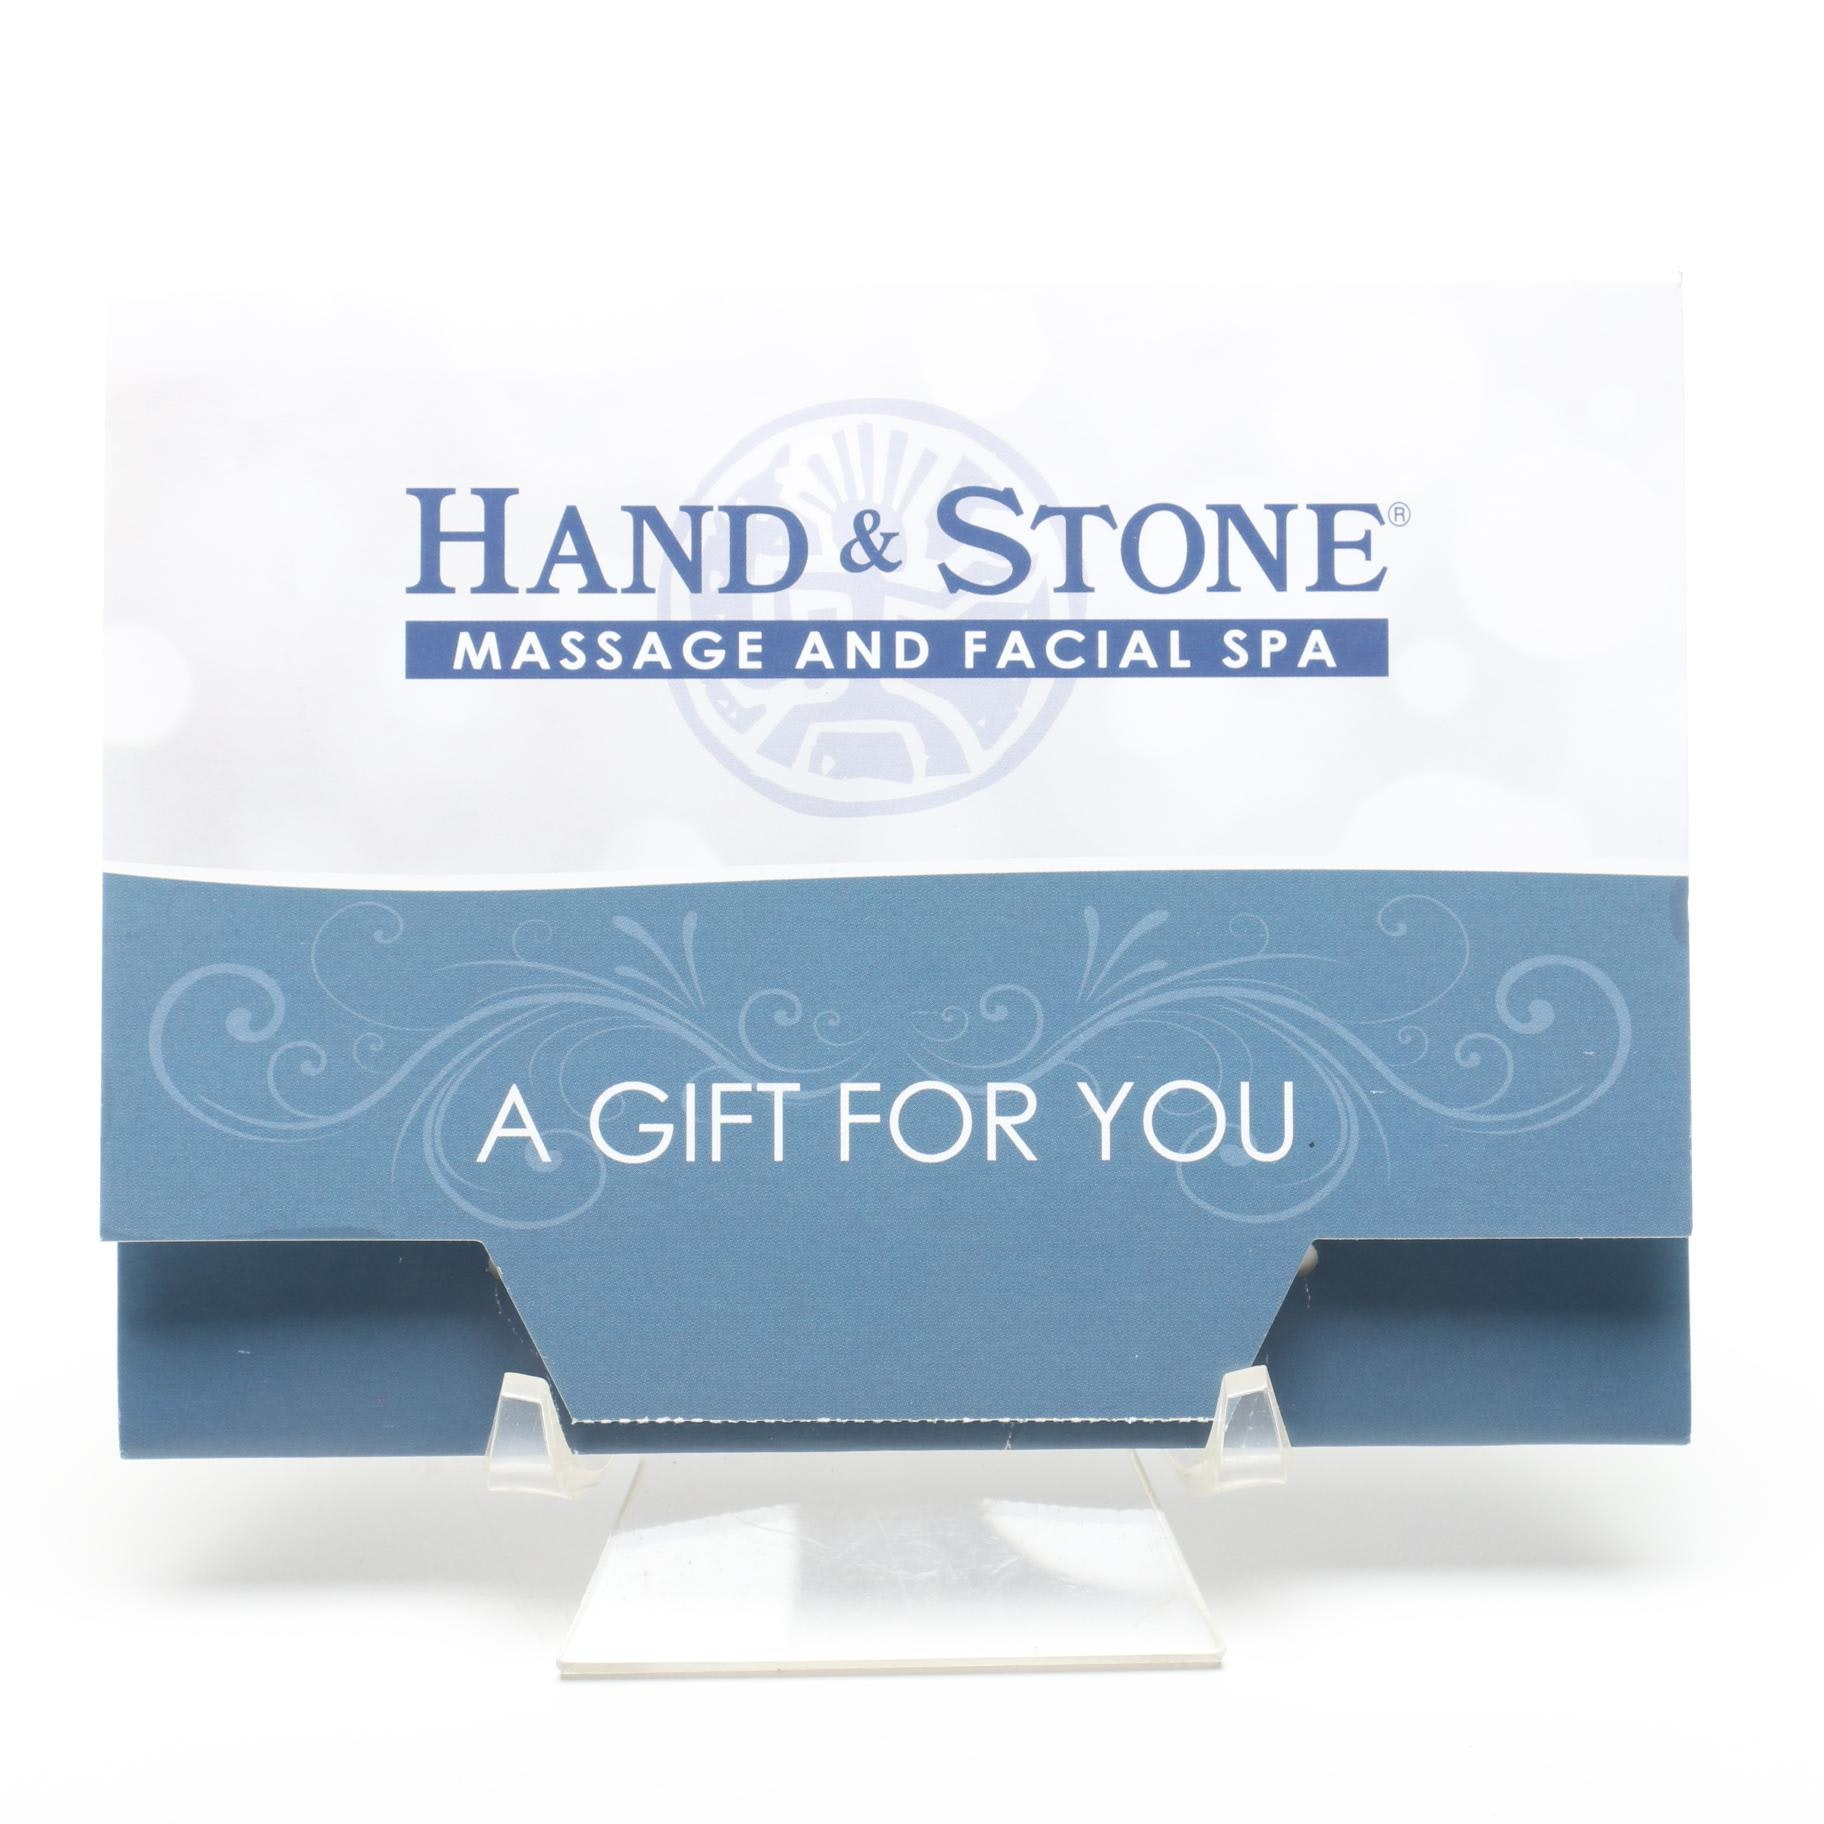 Gift Card From Hand & Stone Massage and Facial Spa